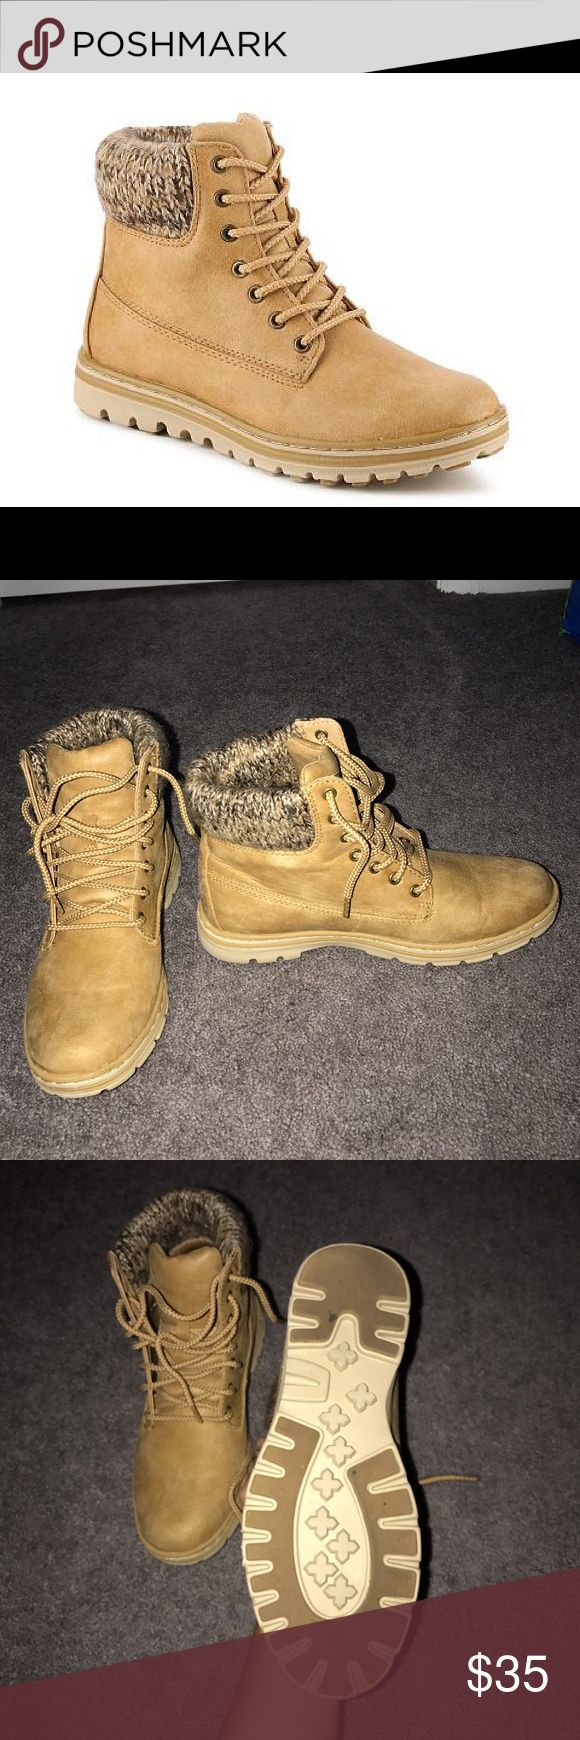 NWOT cliff boots, price is negotiable Worn once for a few hours, in brand new condition! Timberland for exposure but they look like timberlands. Super cute for winter with knit socks! Women's size 8. Price is not firm! Timberland Shoes Winter & Rain Boots